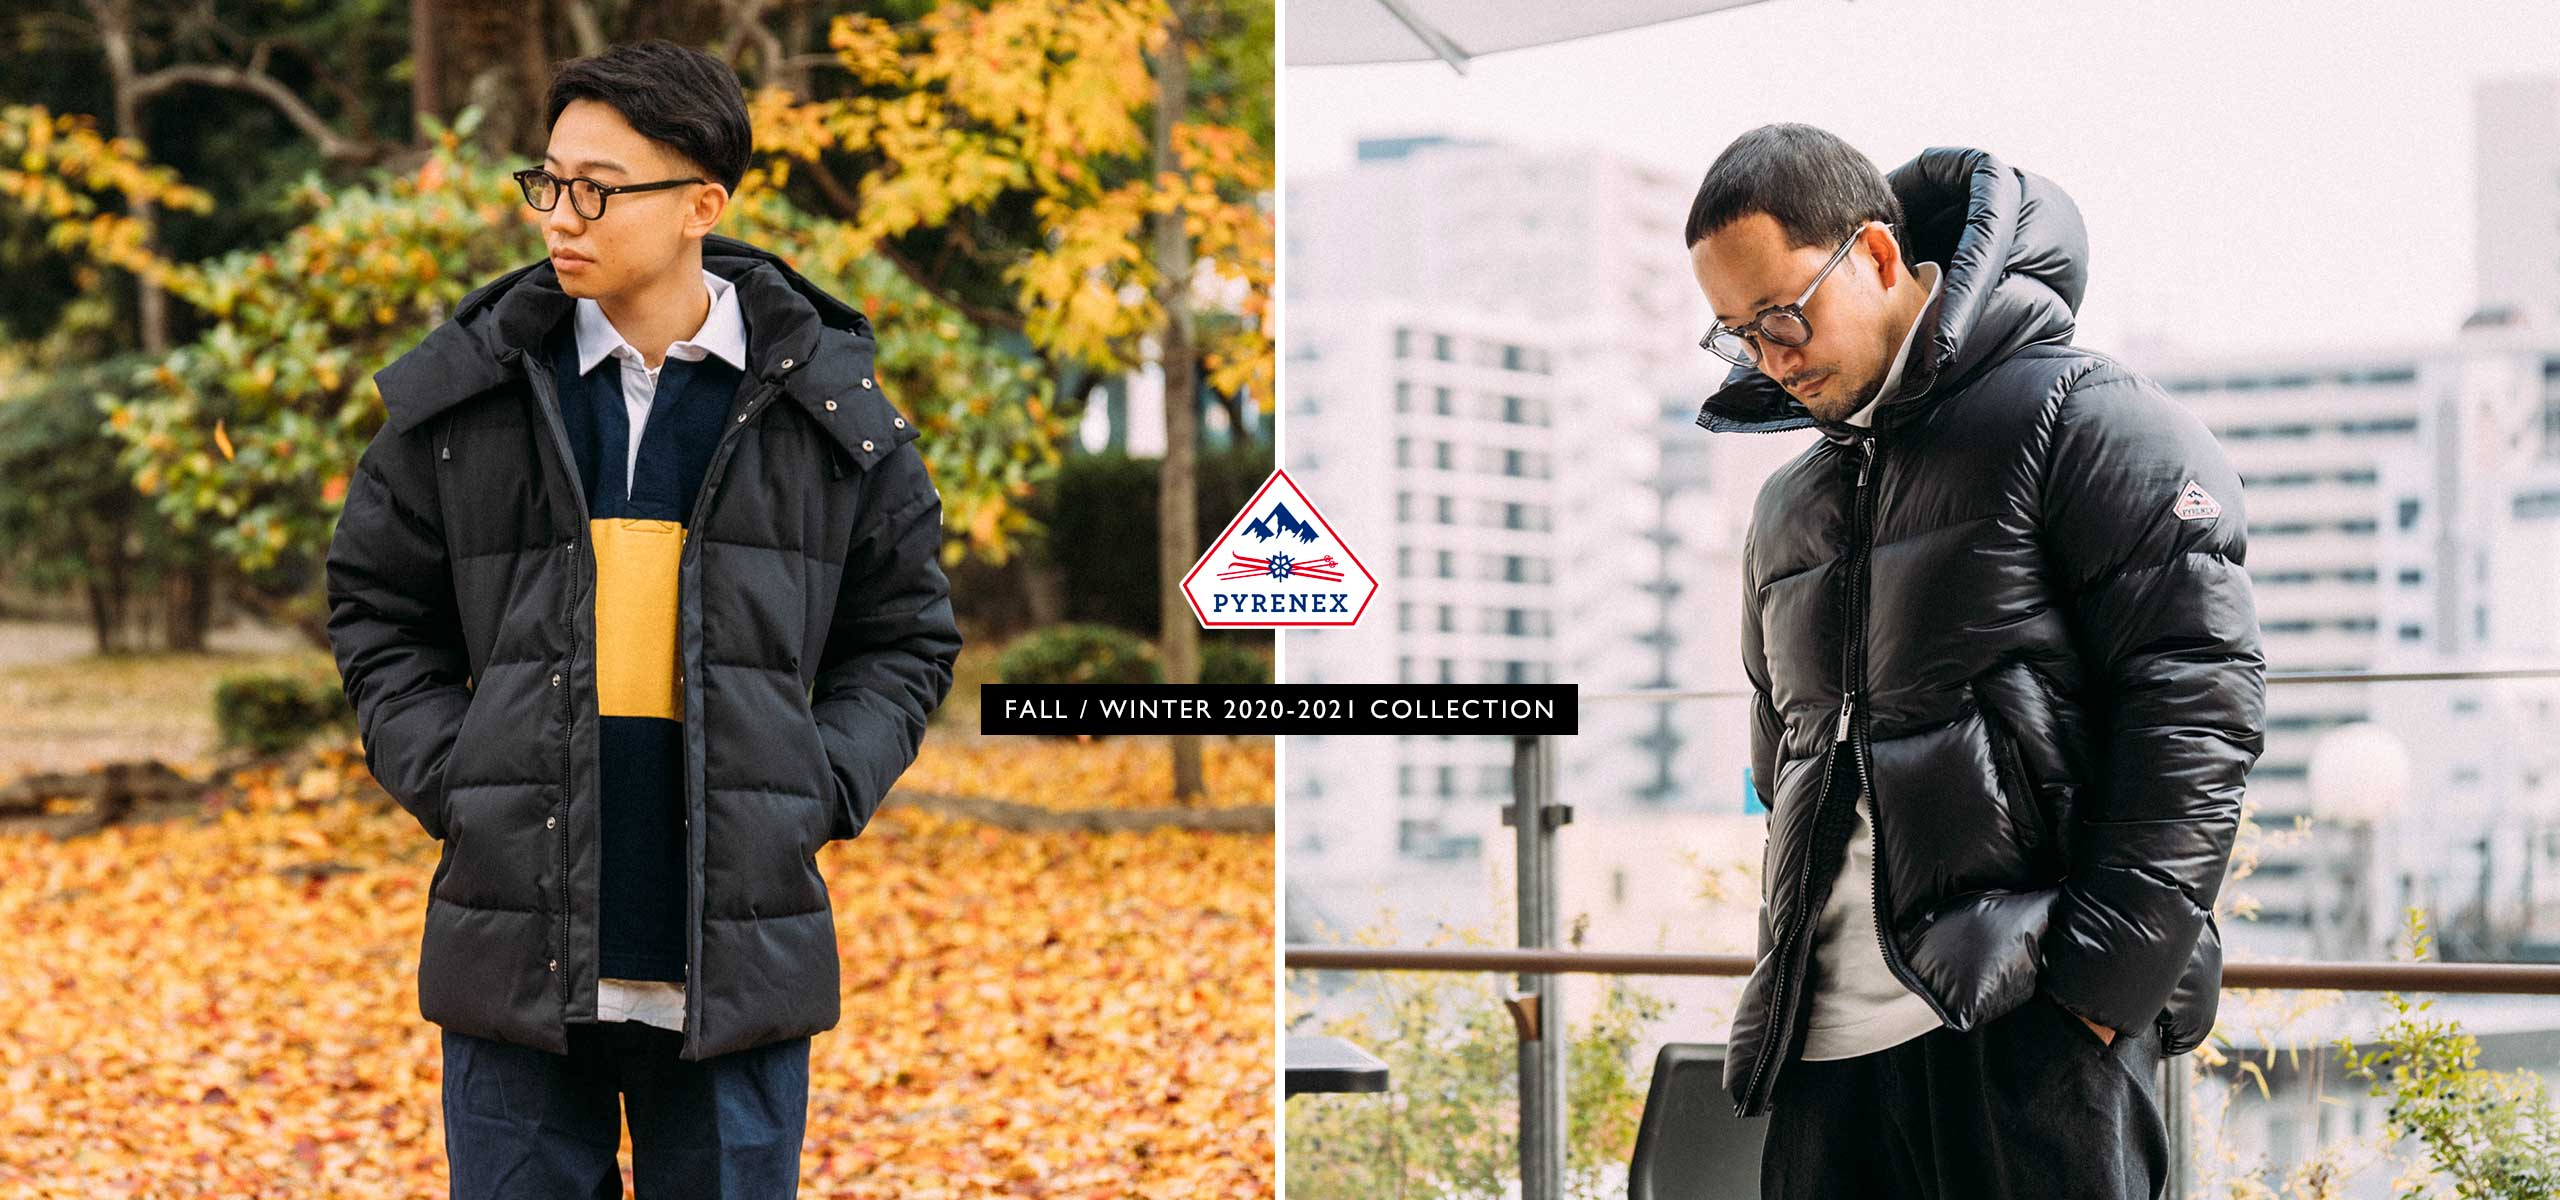 PYRENEX F/W 2020-2021 COLLECTION